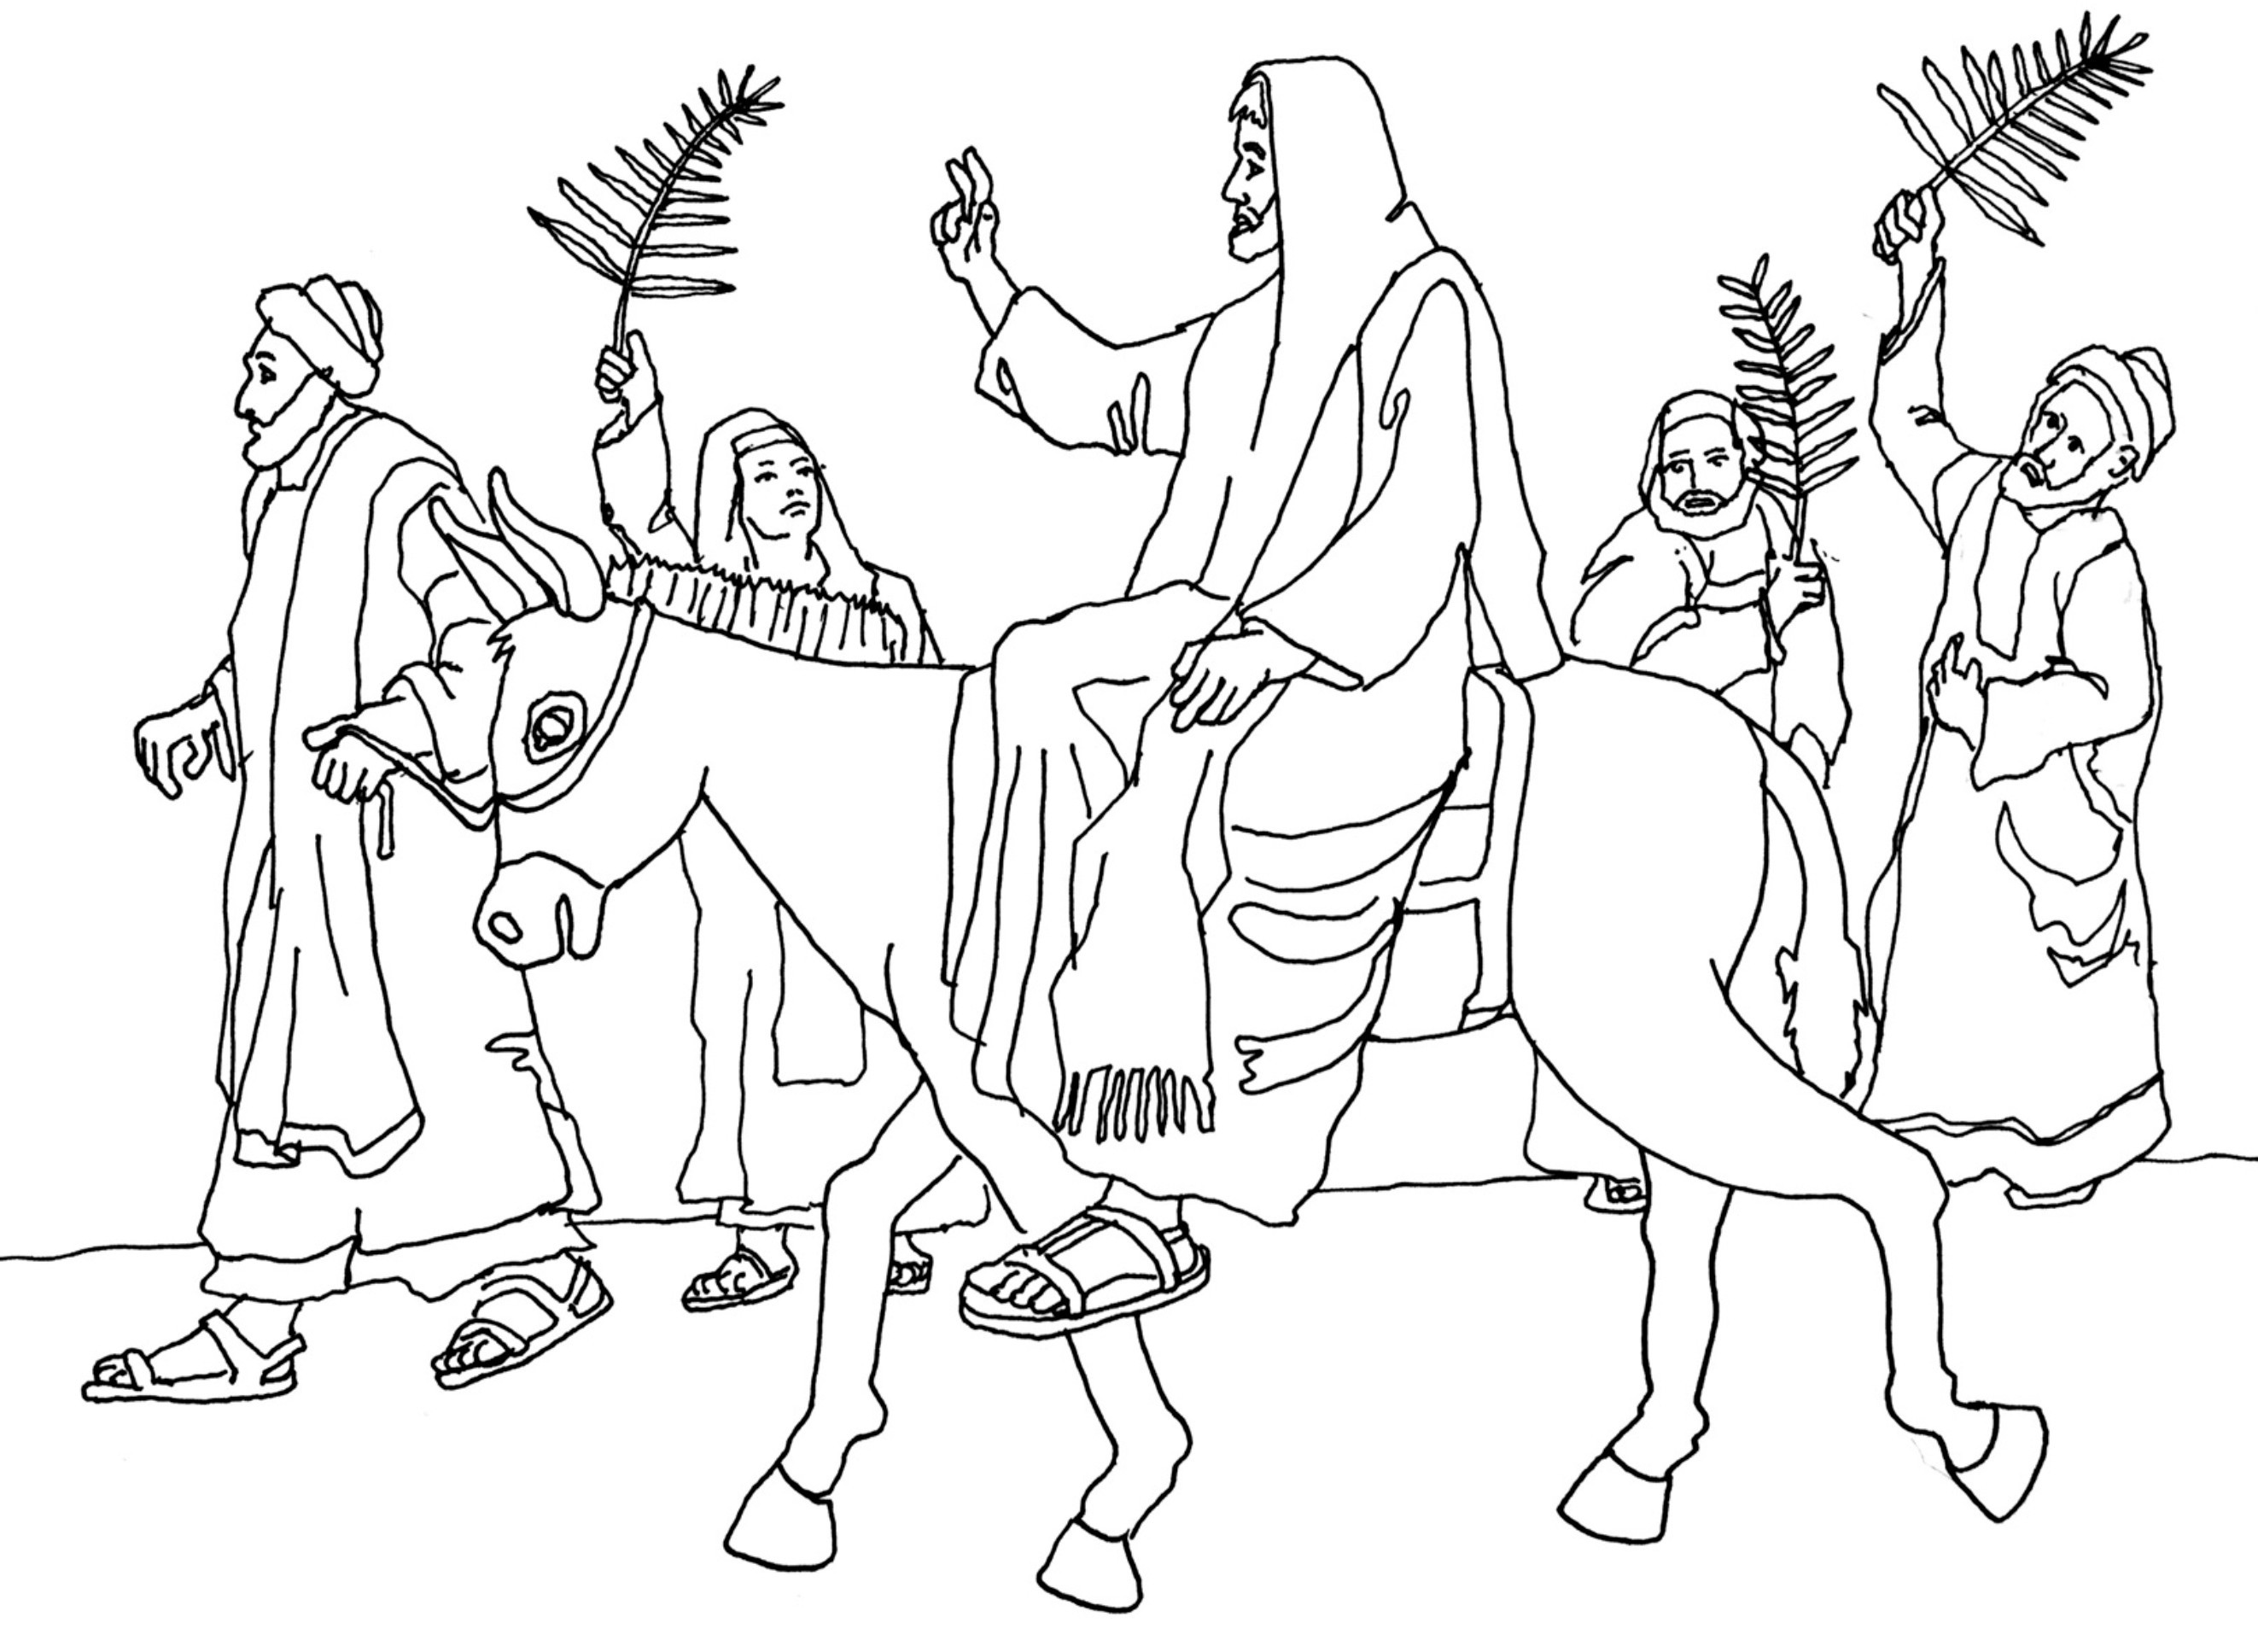 Palm Sunday Coloring Page At Getcolorings